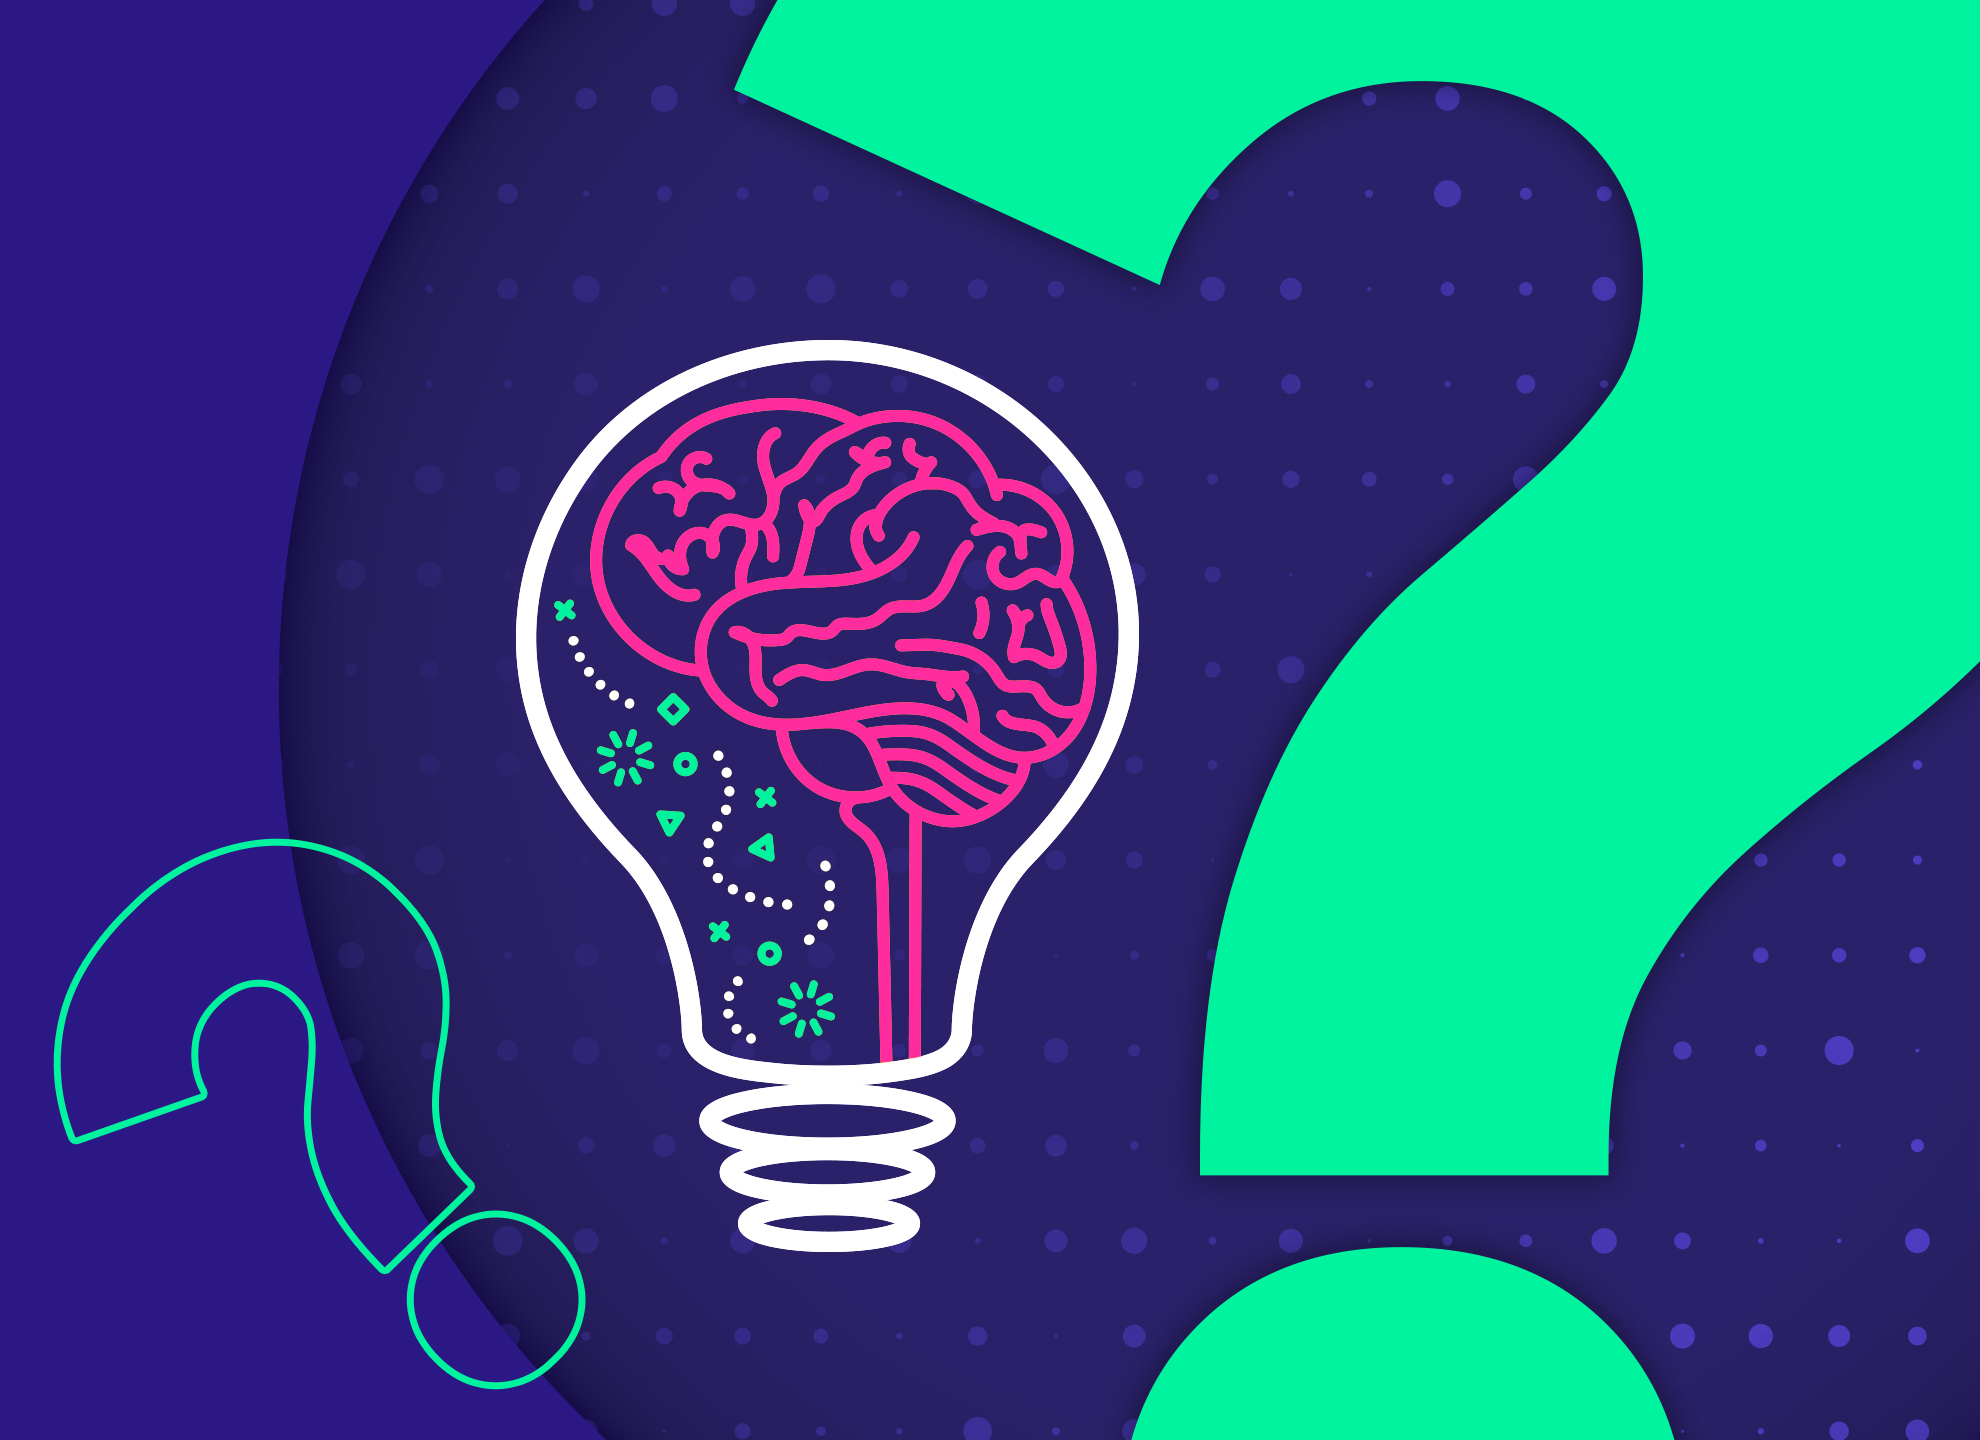 A framework for creativity and innovation for the Marketer. A fireside chat with Neuroscientist, David Eagleman.